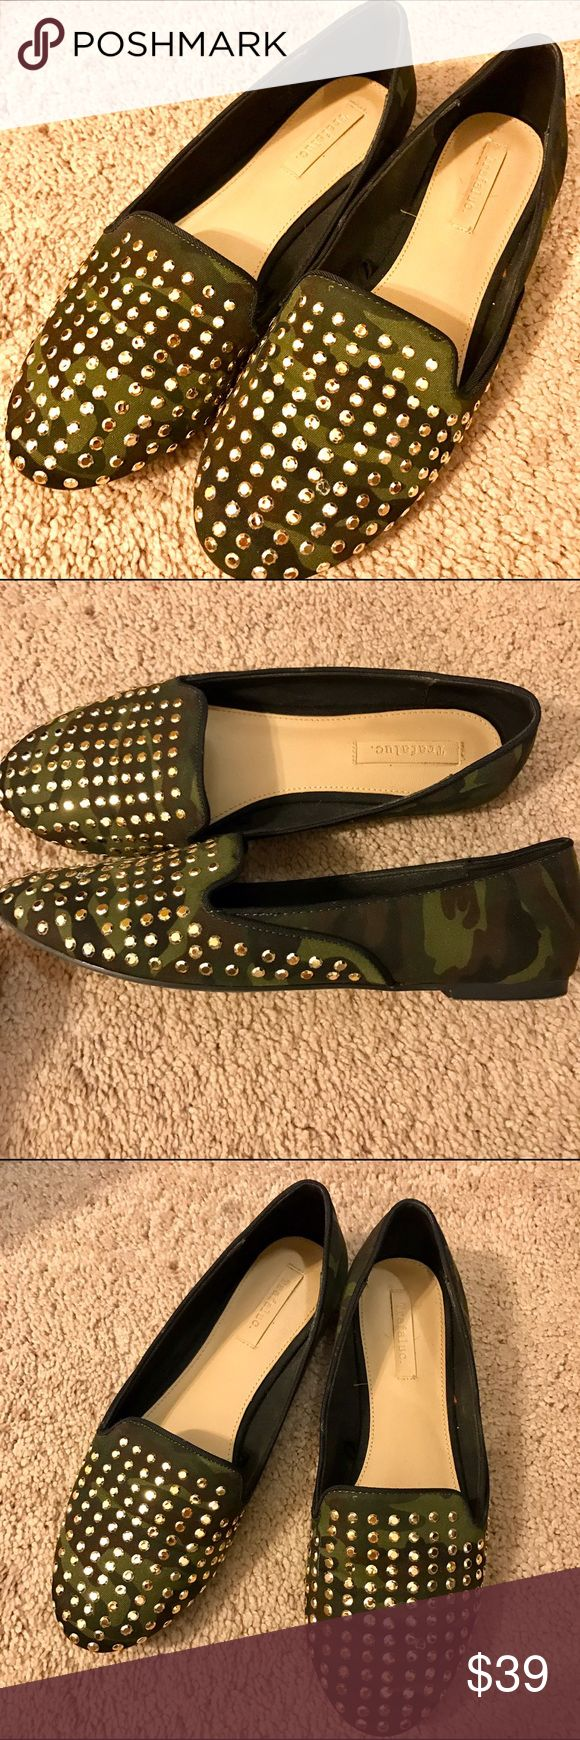 Zara Green Army Camo Print Studded Flats 7.5 Green army camo printed flats with rose gold studs from Zara in size 7.5, worn once. Zara Shoes Flats & Loafers